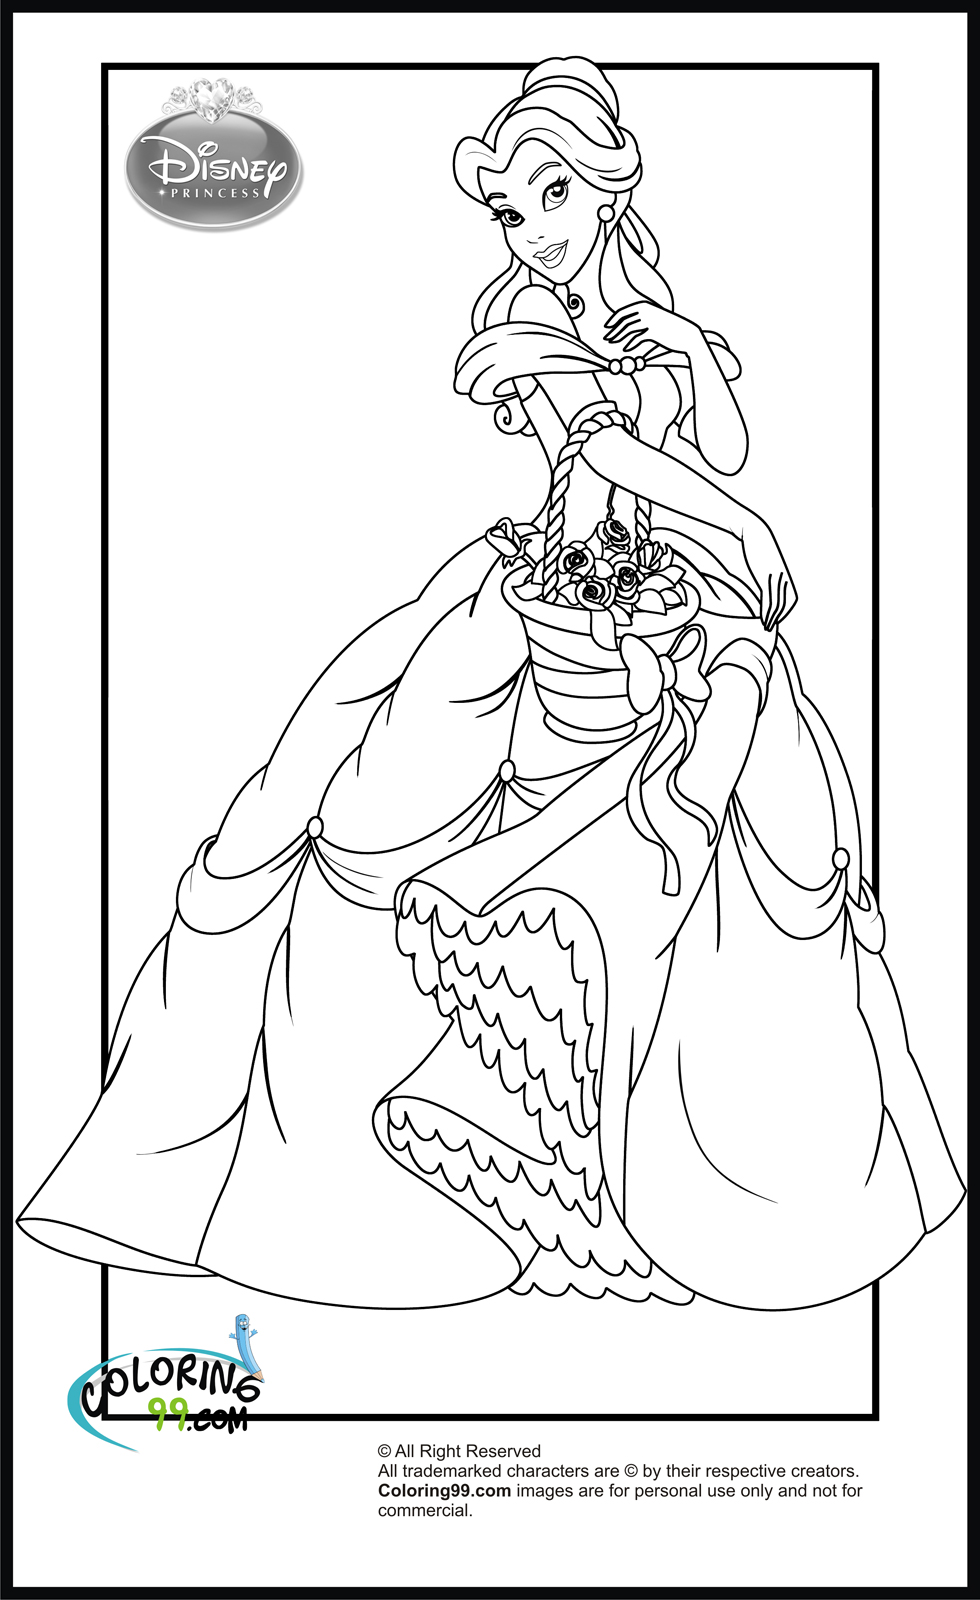 coloring pictures of princesses disney princess coloring pages minister coloring coloring pictures princesses of